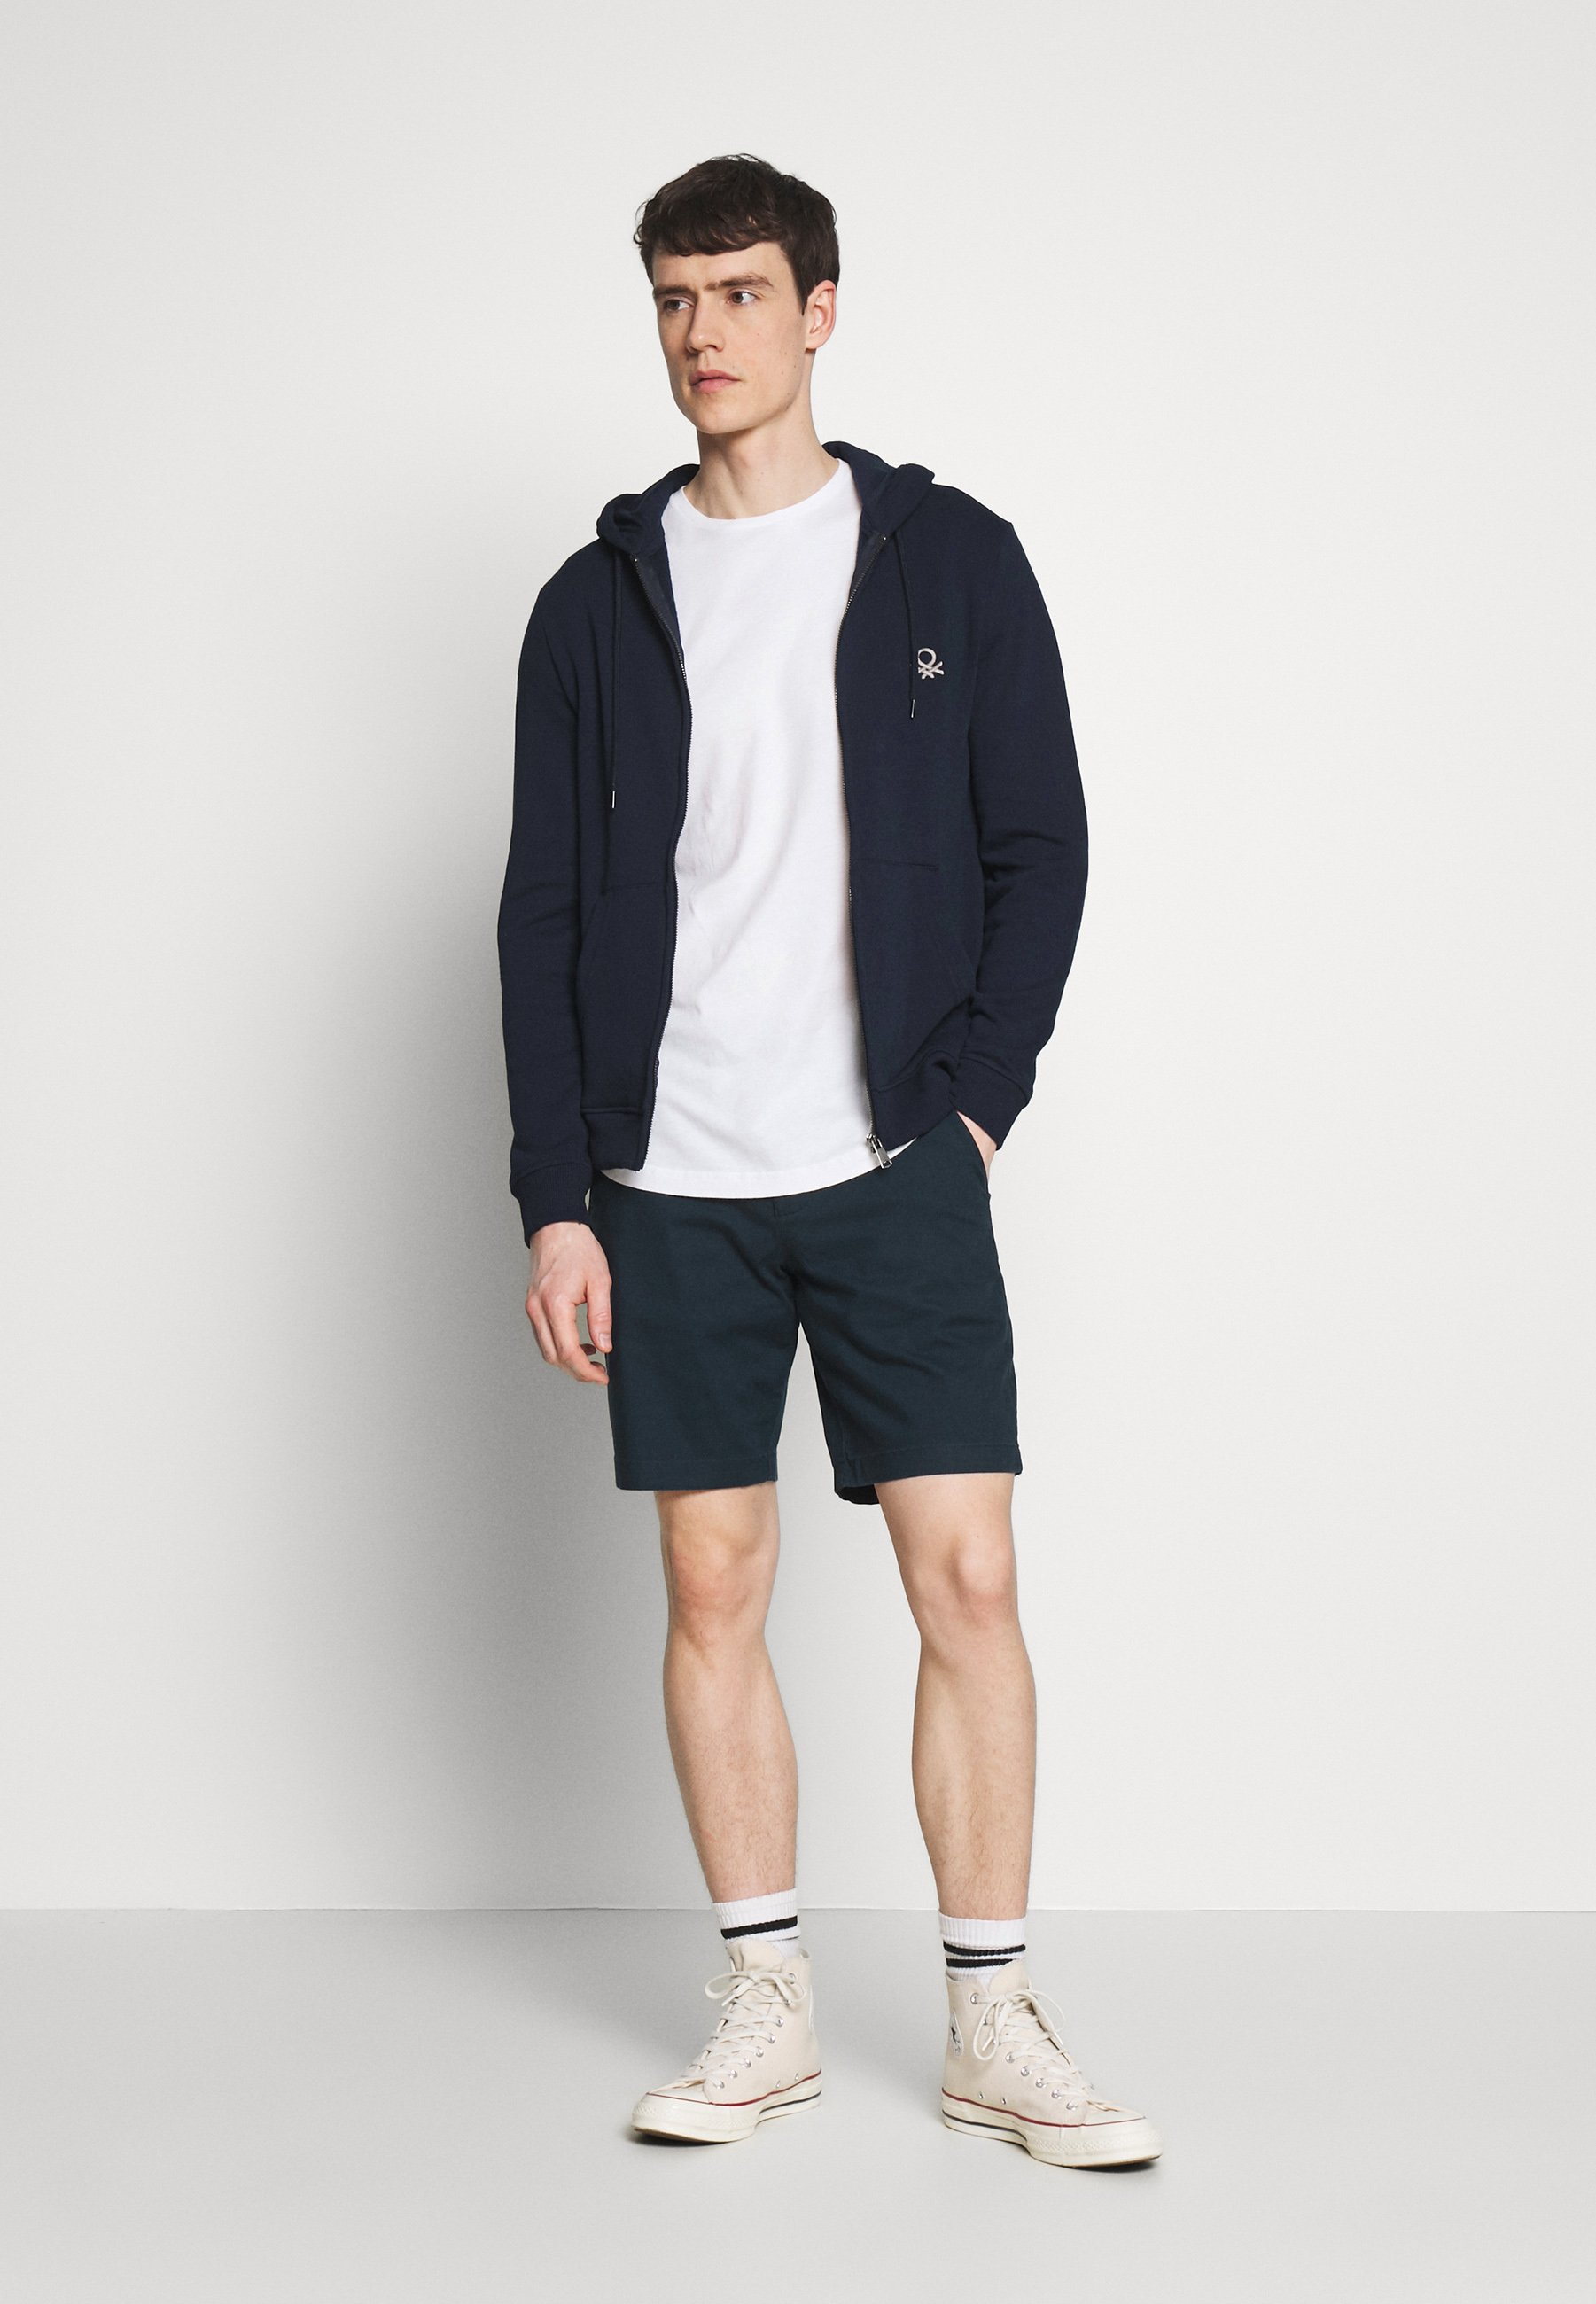 Abercrombie & Fitch Short - navy